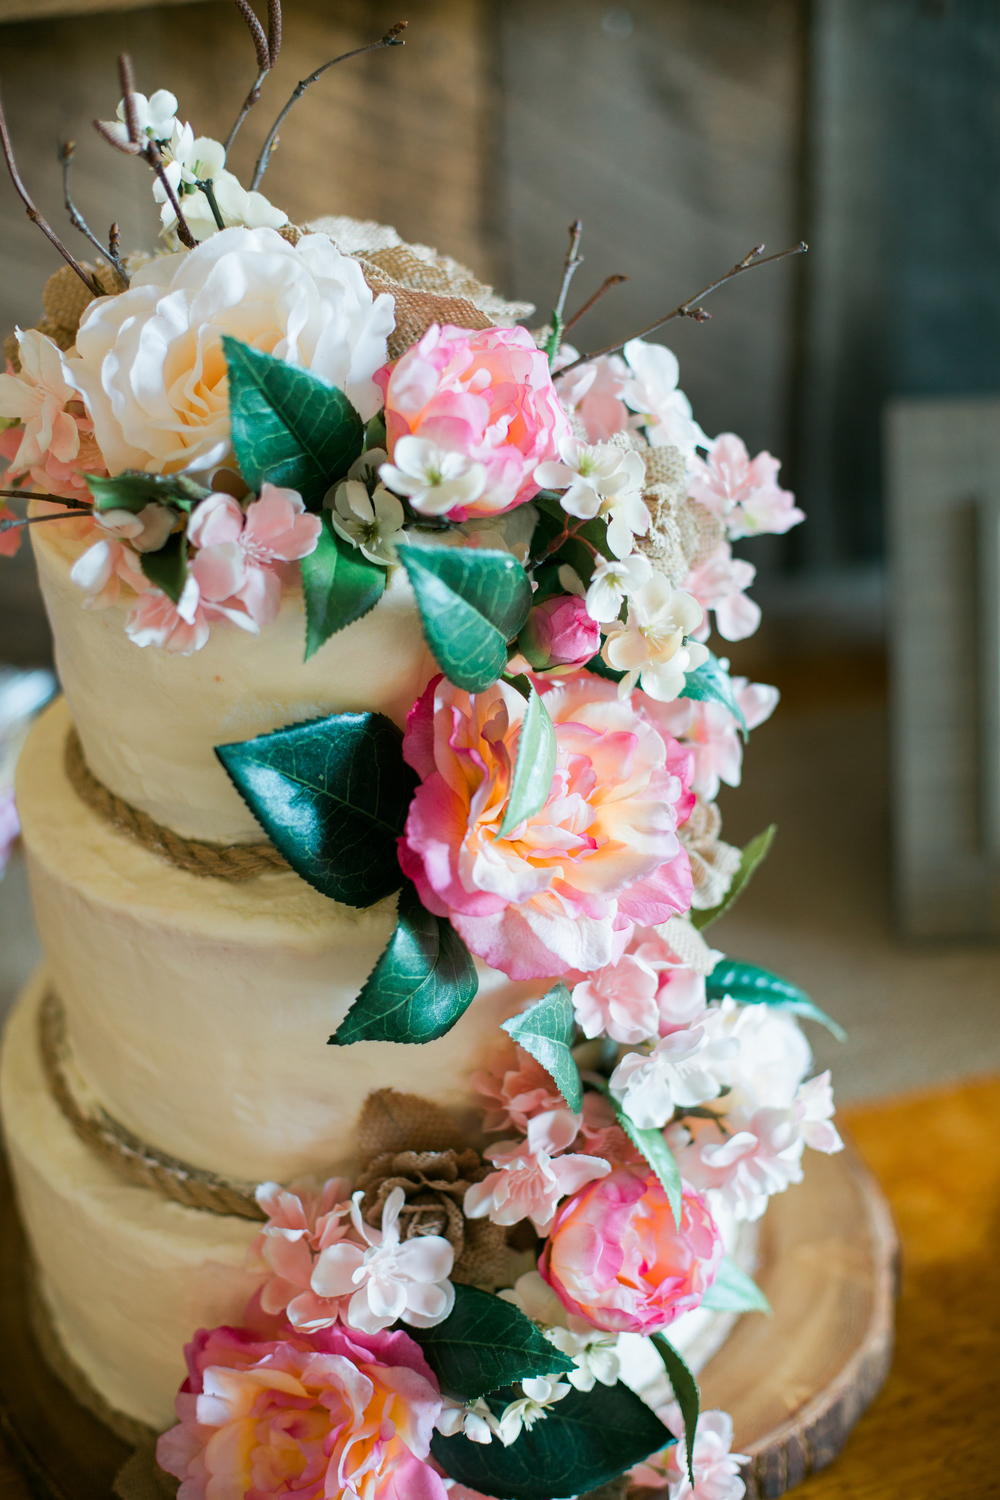 Wedding cake with rustic details and florals on top of wood slice for rustic wedding at Echo Valley